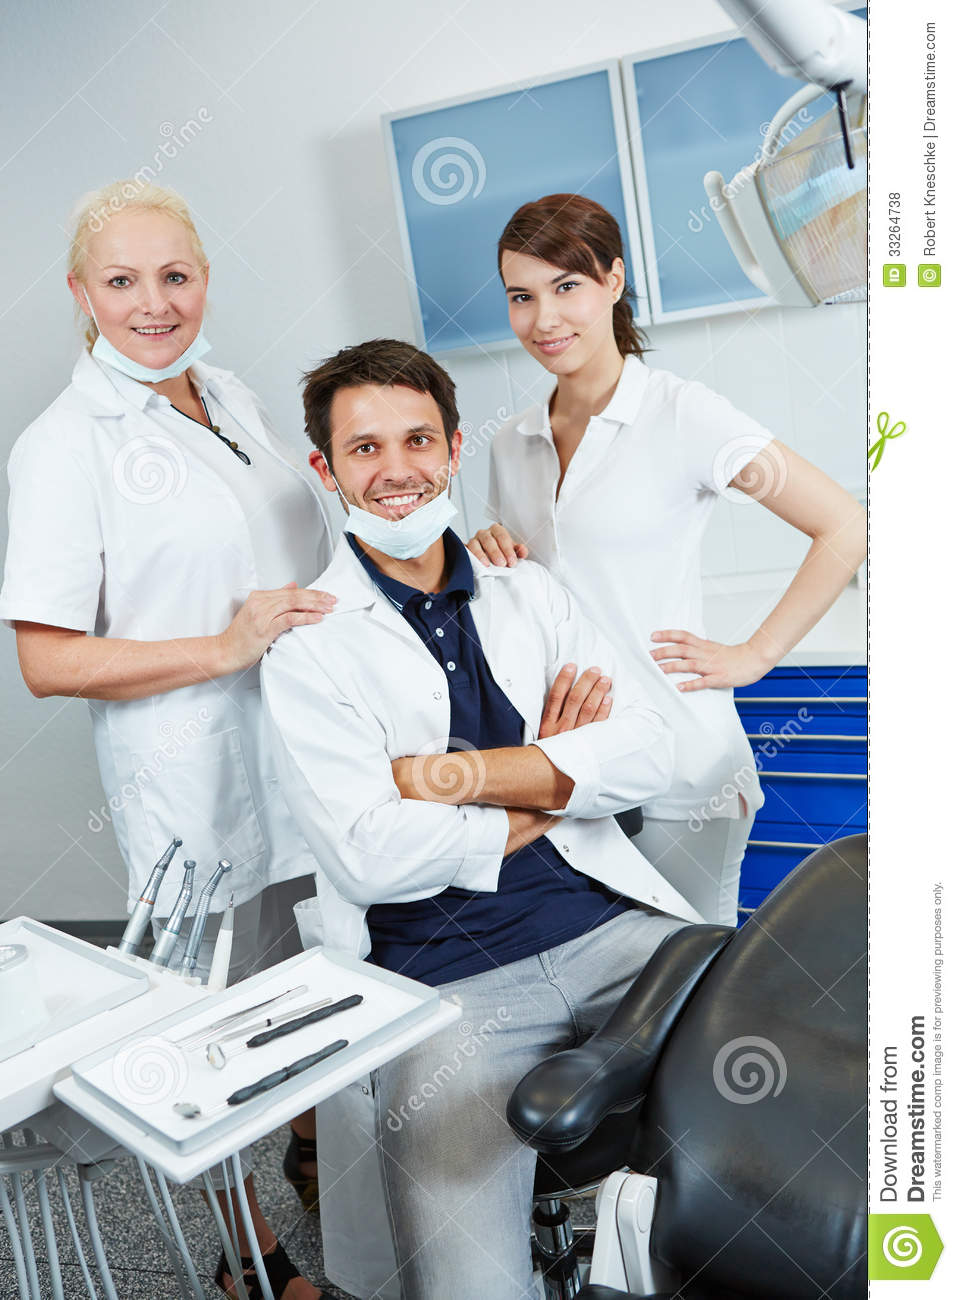 Dentist with group of dental assistants